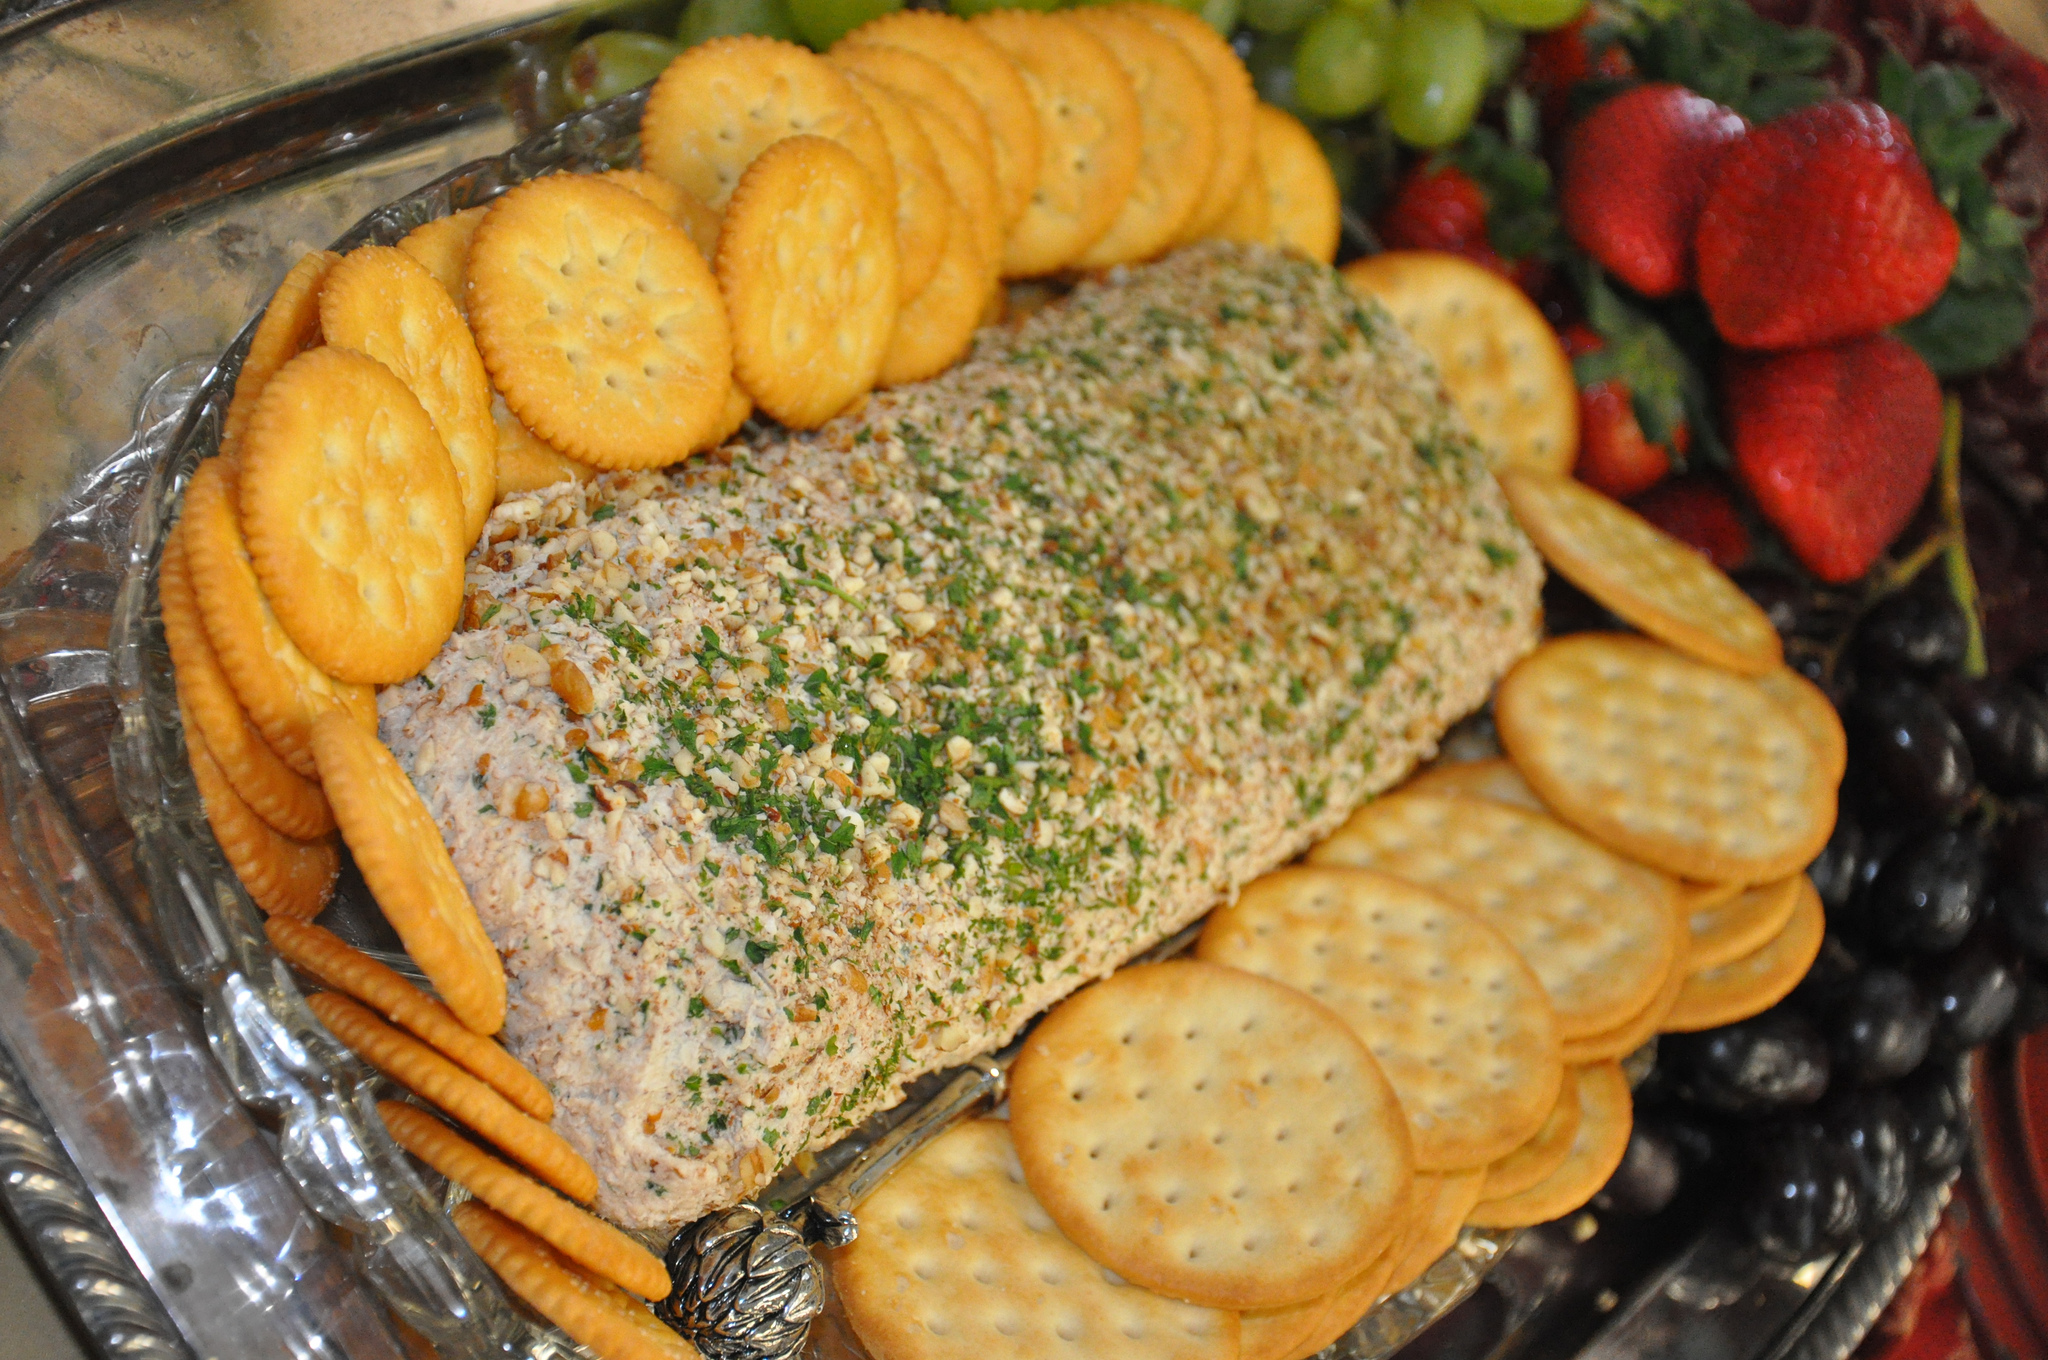 When planning a game day party, make healthy food choices by using white meat, such as the chicken in this chicken log, instead of beef and pork. To ensure that food remains at safe temperatures, keep cold-perishable foods in the refrigerator until right before the party and don't leave them at room temperature for more than two hours.